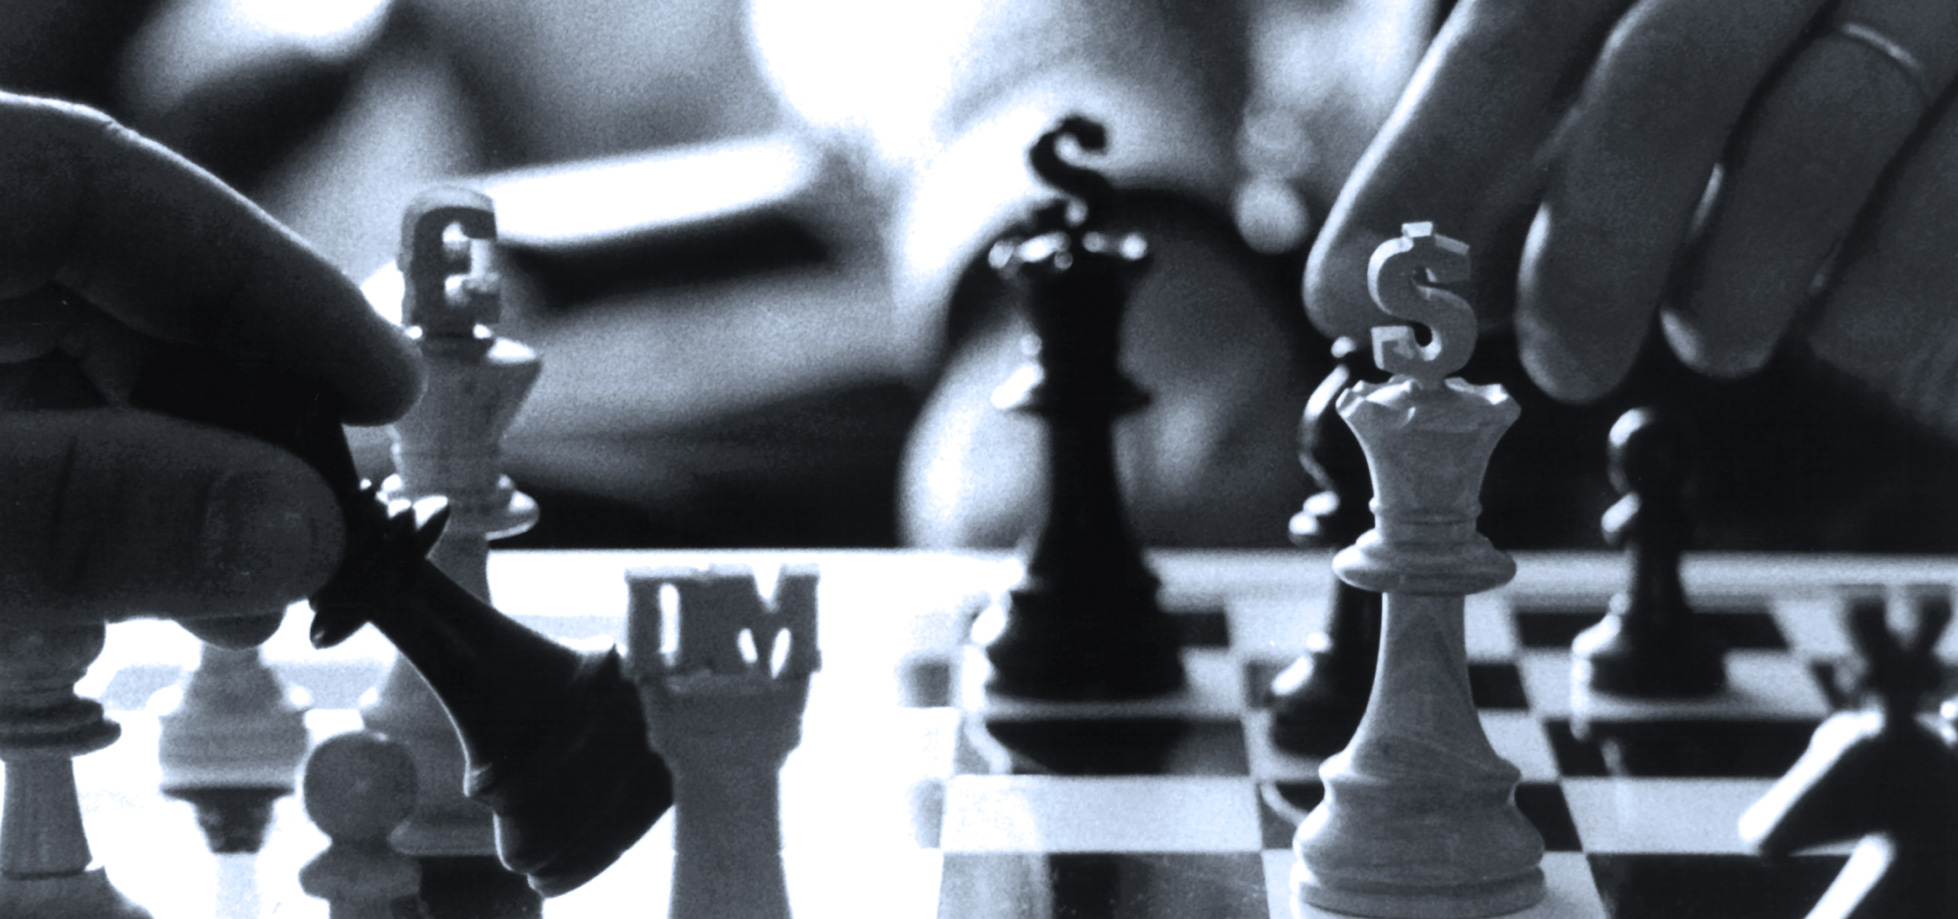 Chess and the currency markets, business concepts.